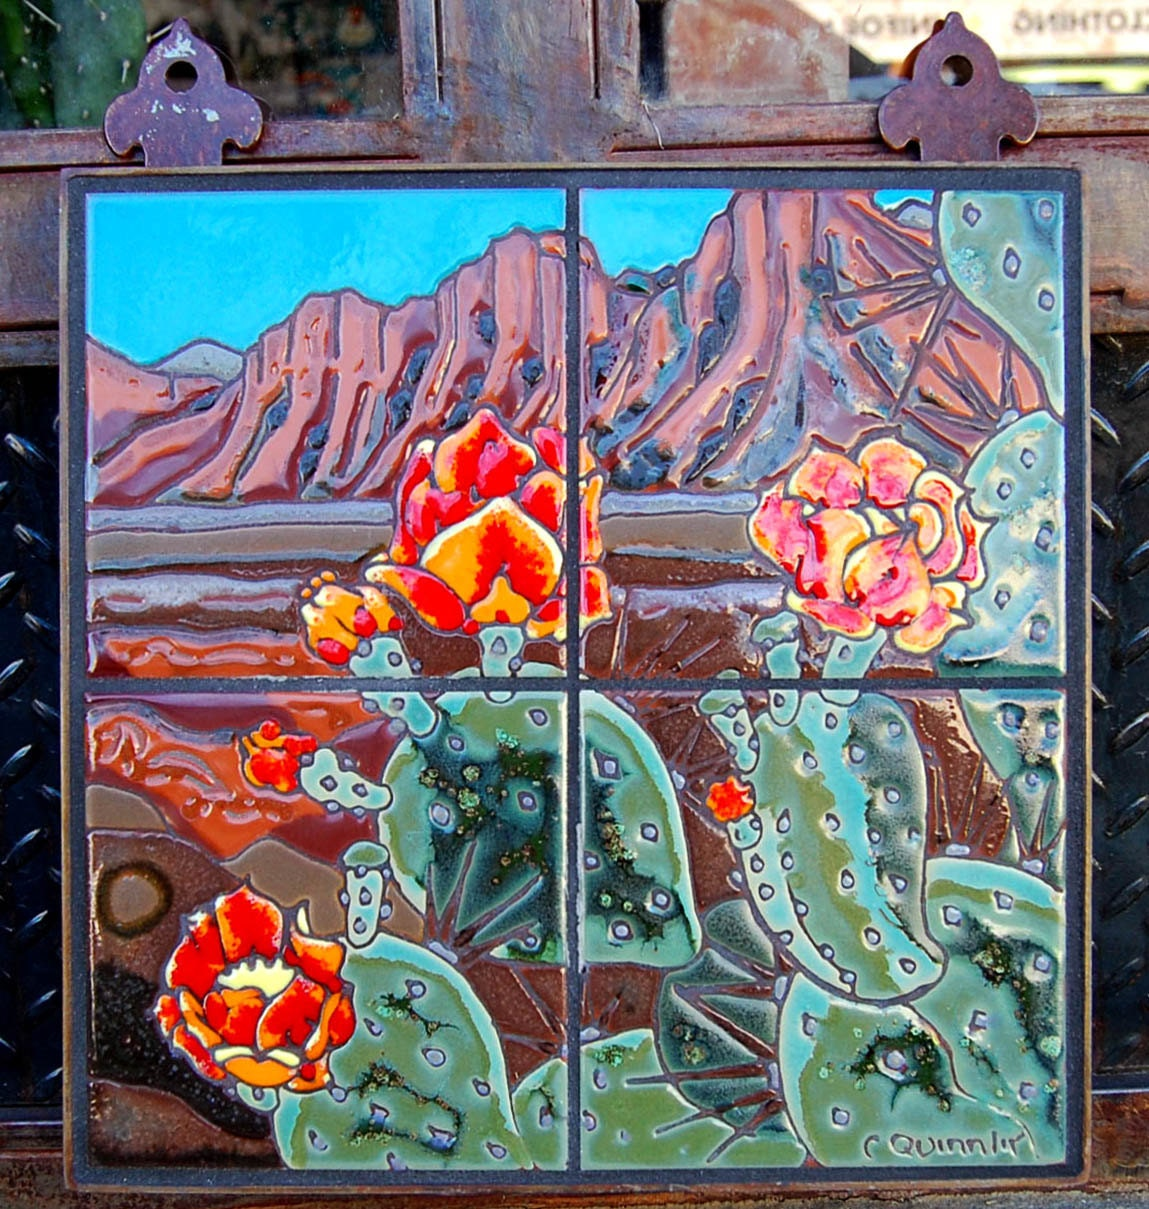 12x12 prickly pear blooms hand glazed decorative tile mural for Decorative tile mural